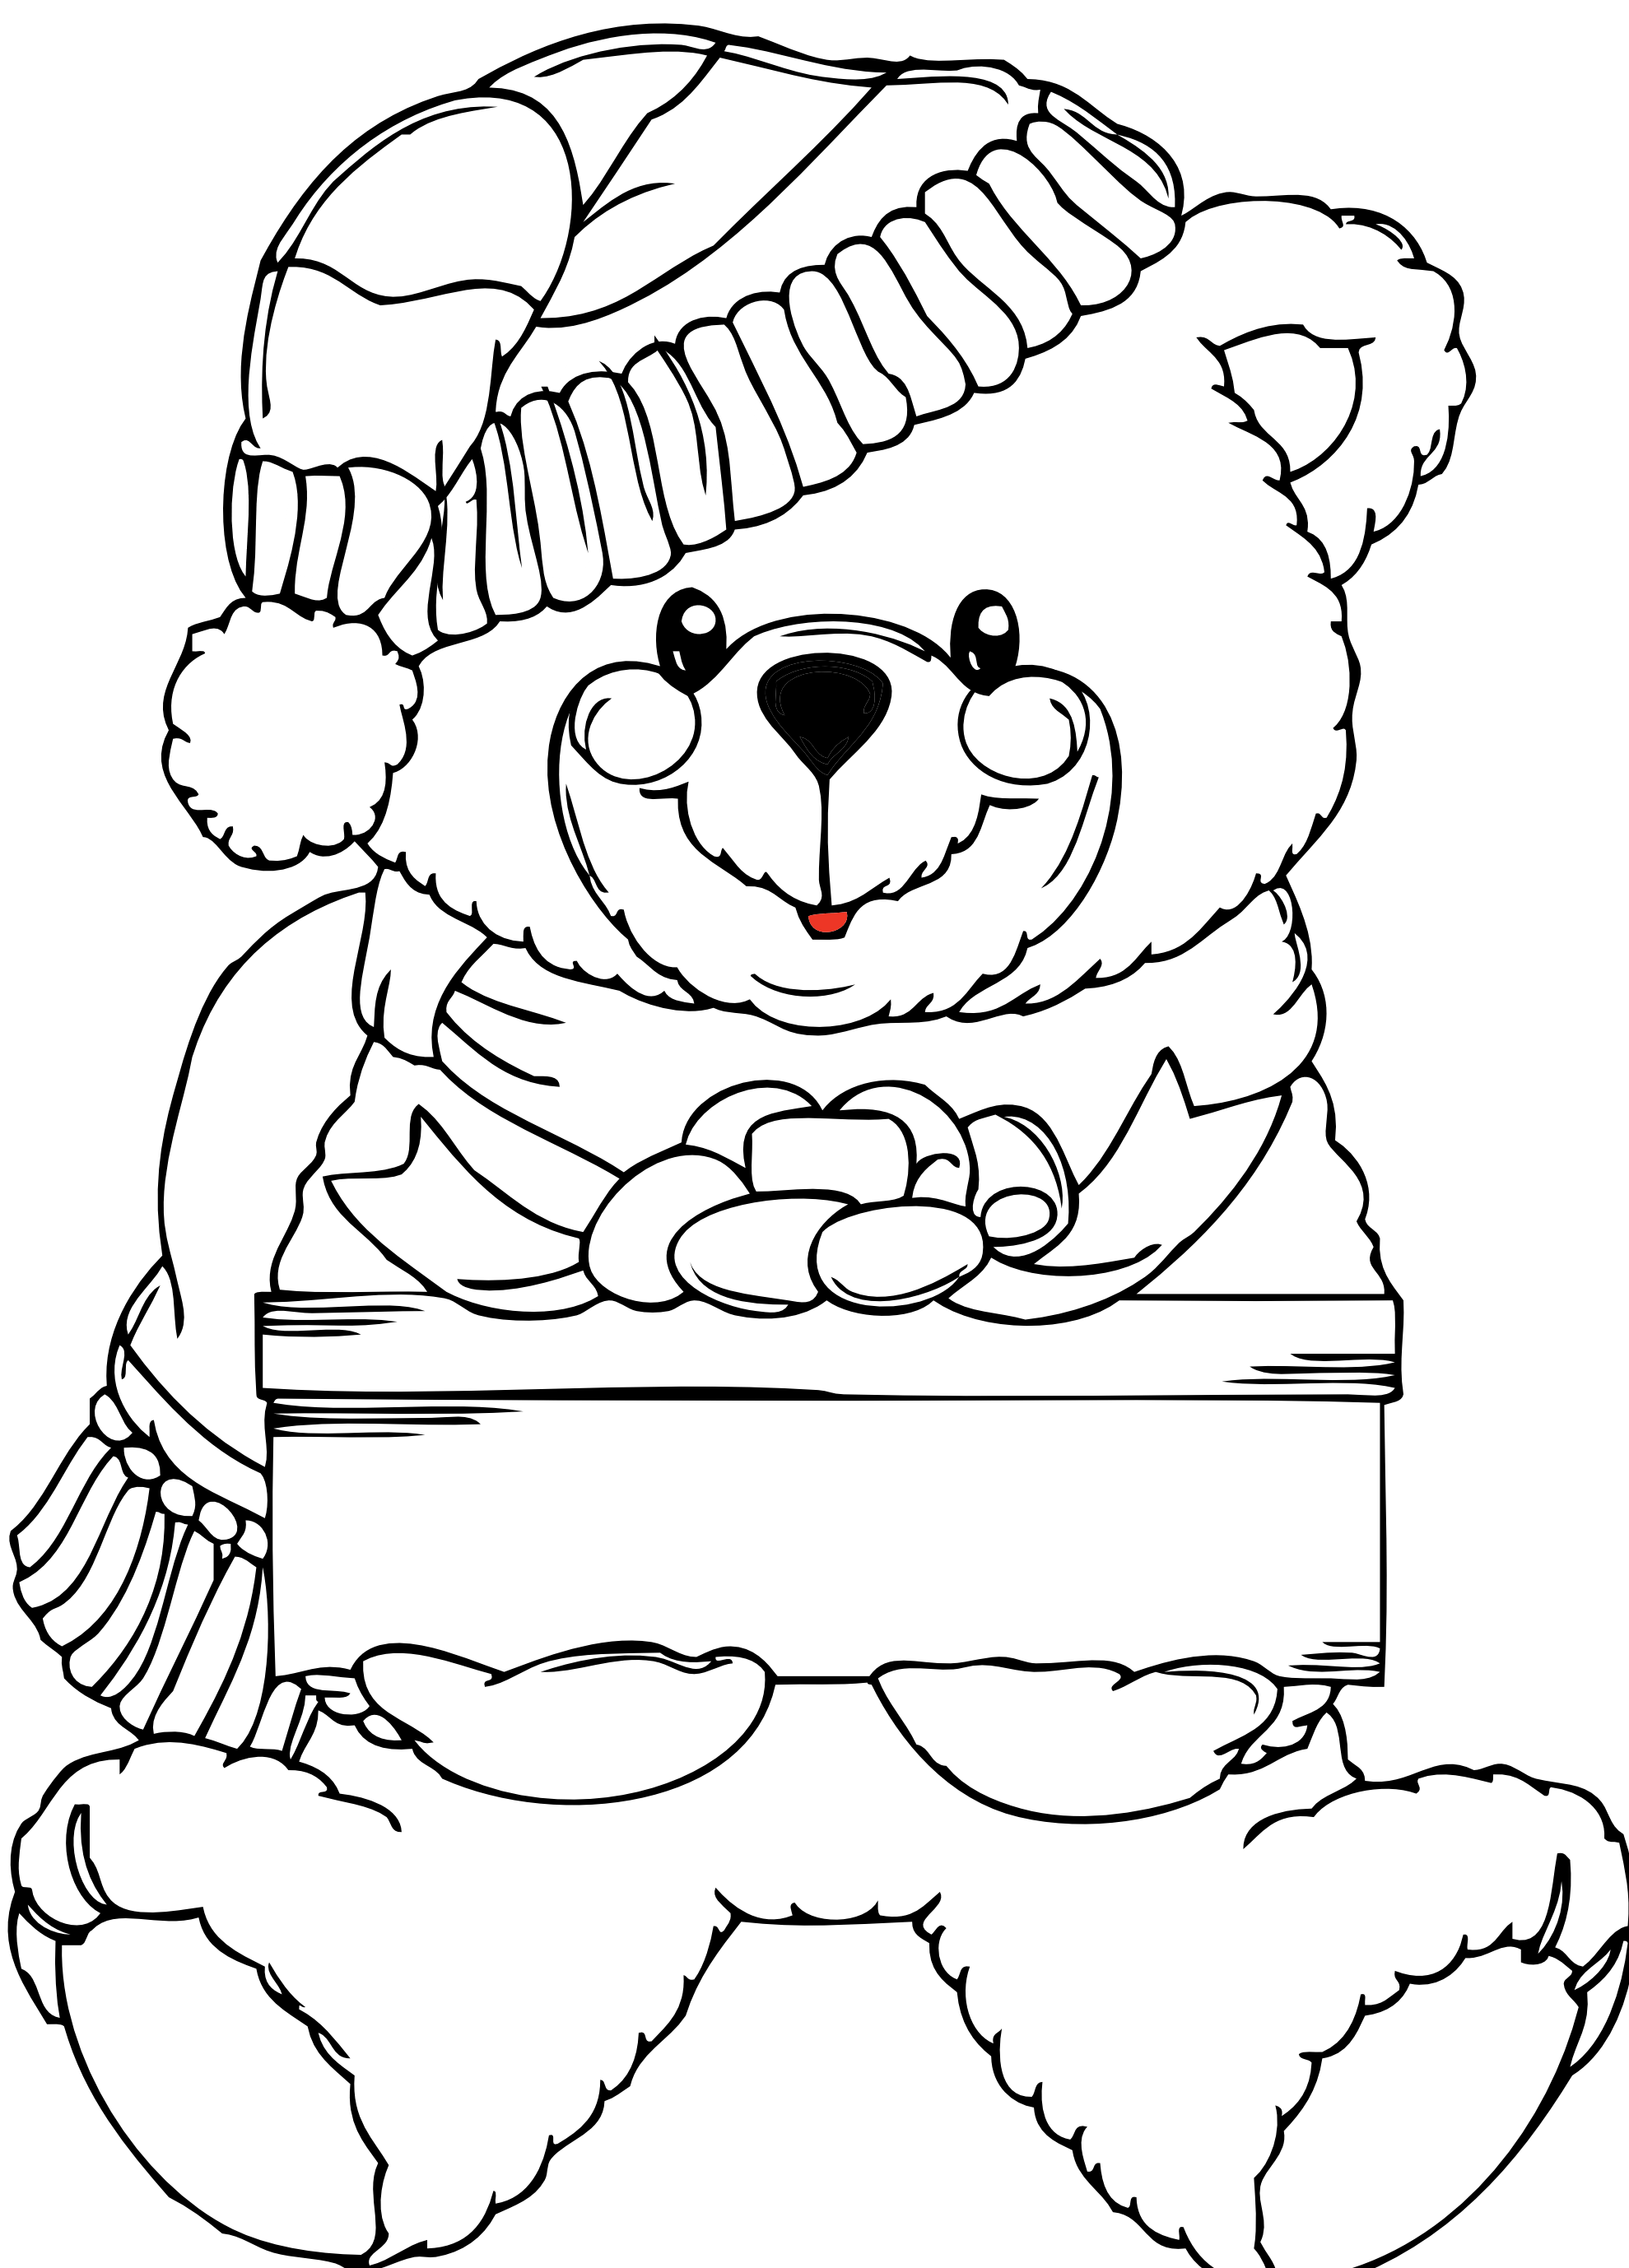 Free Line Drawing Teddy Bear Download Free Clip Art Free Clip Art On Clipart Library